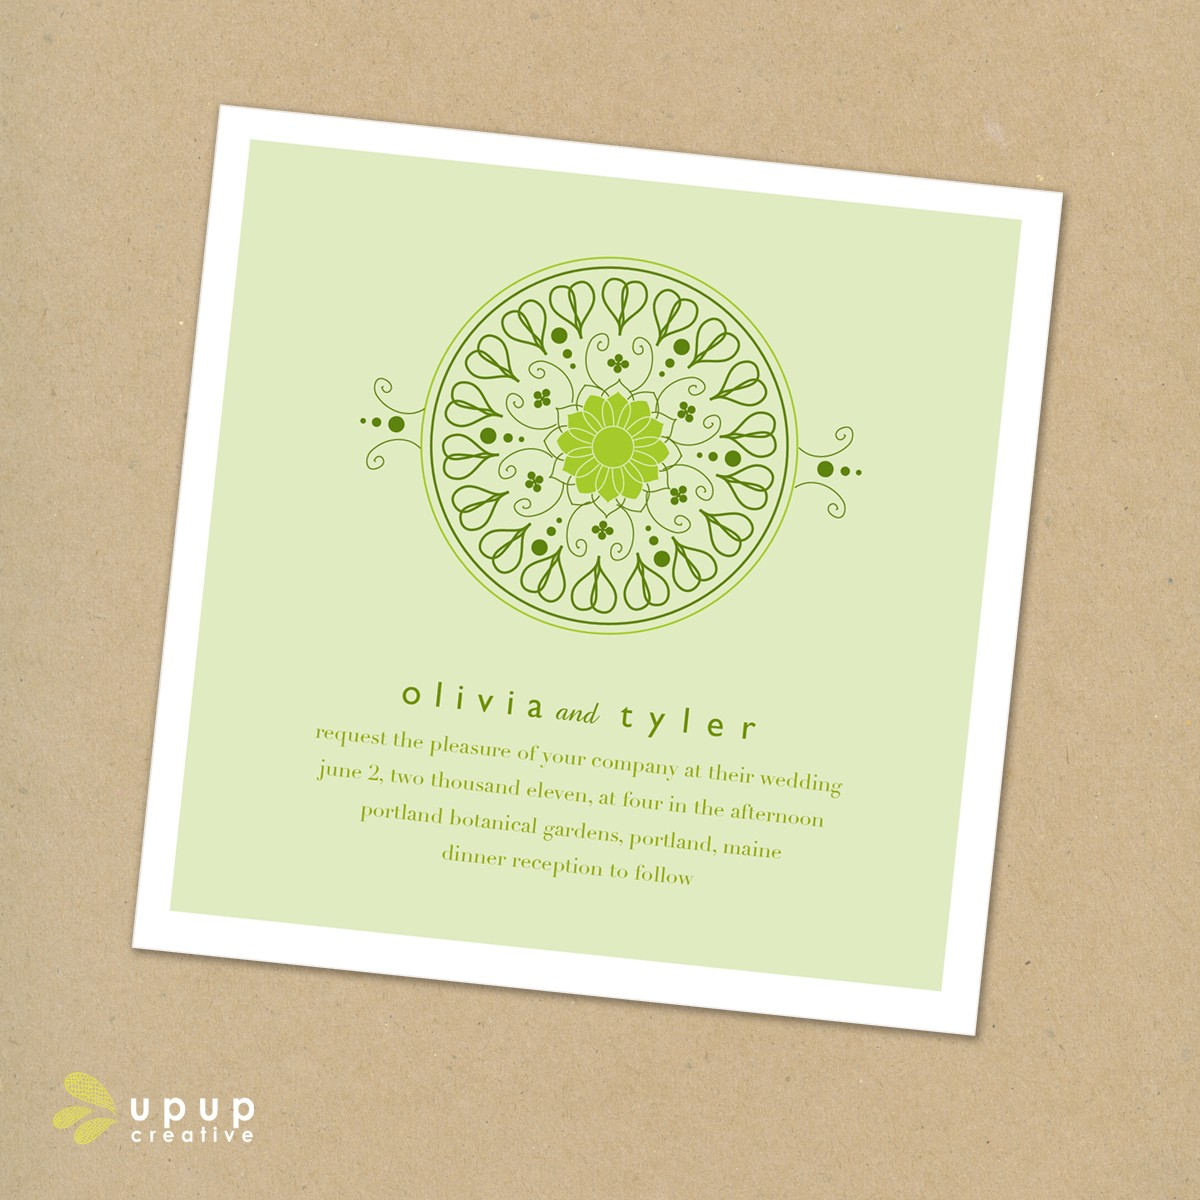 Eco Friendly Wedding Invitations and get inspiration to create nice invitation ideas